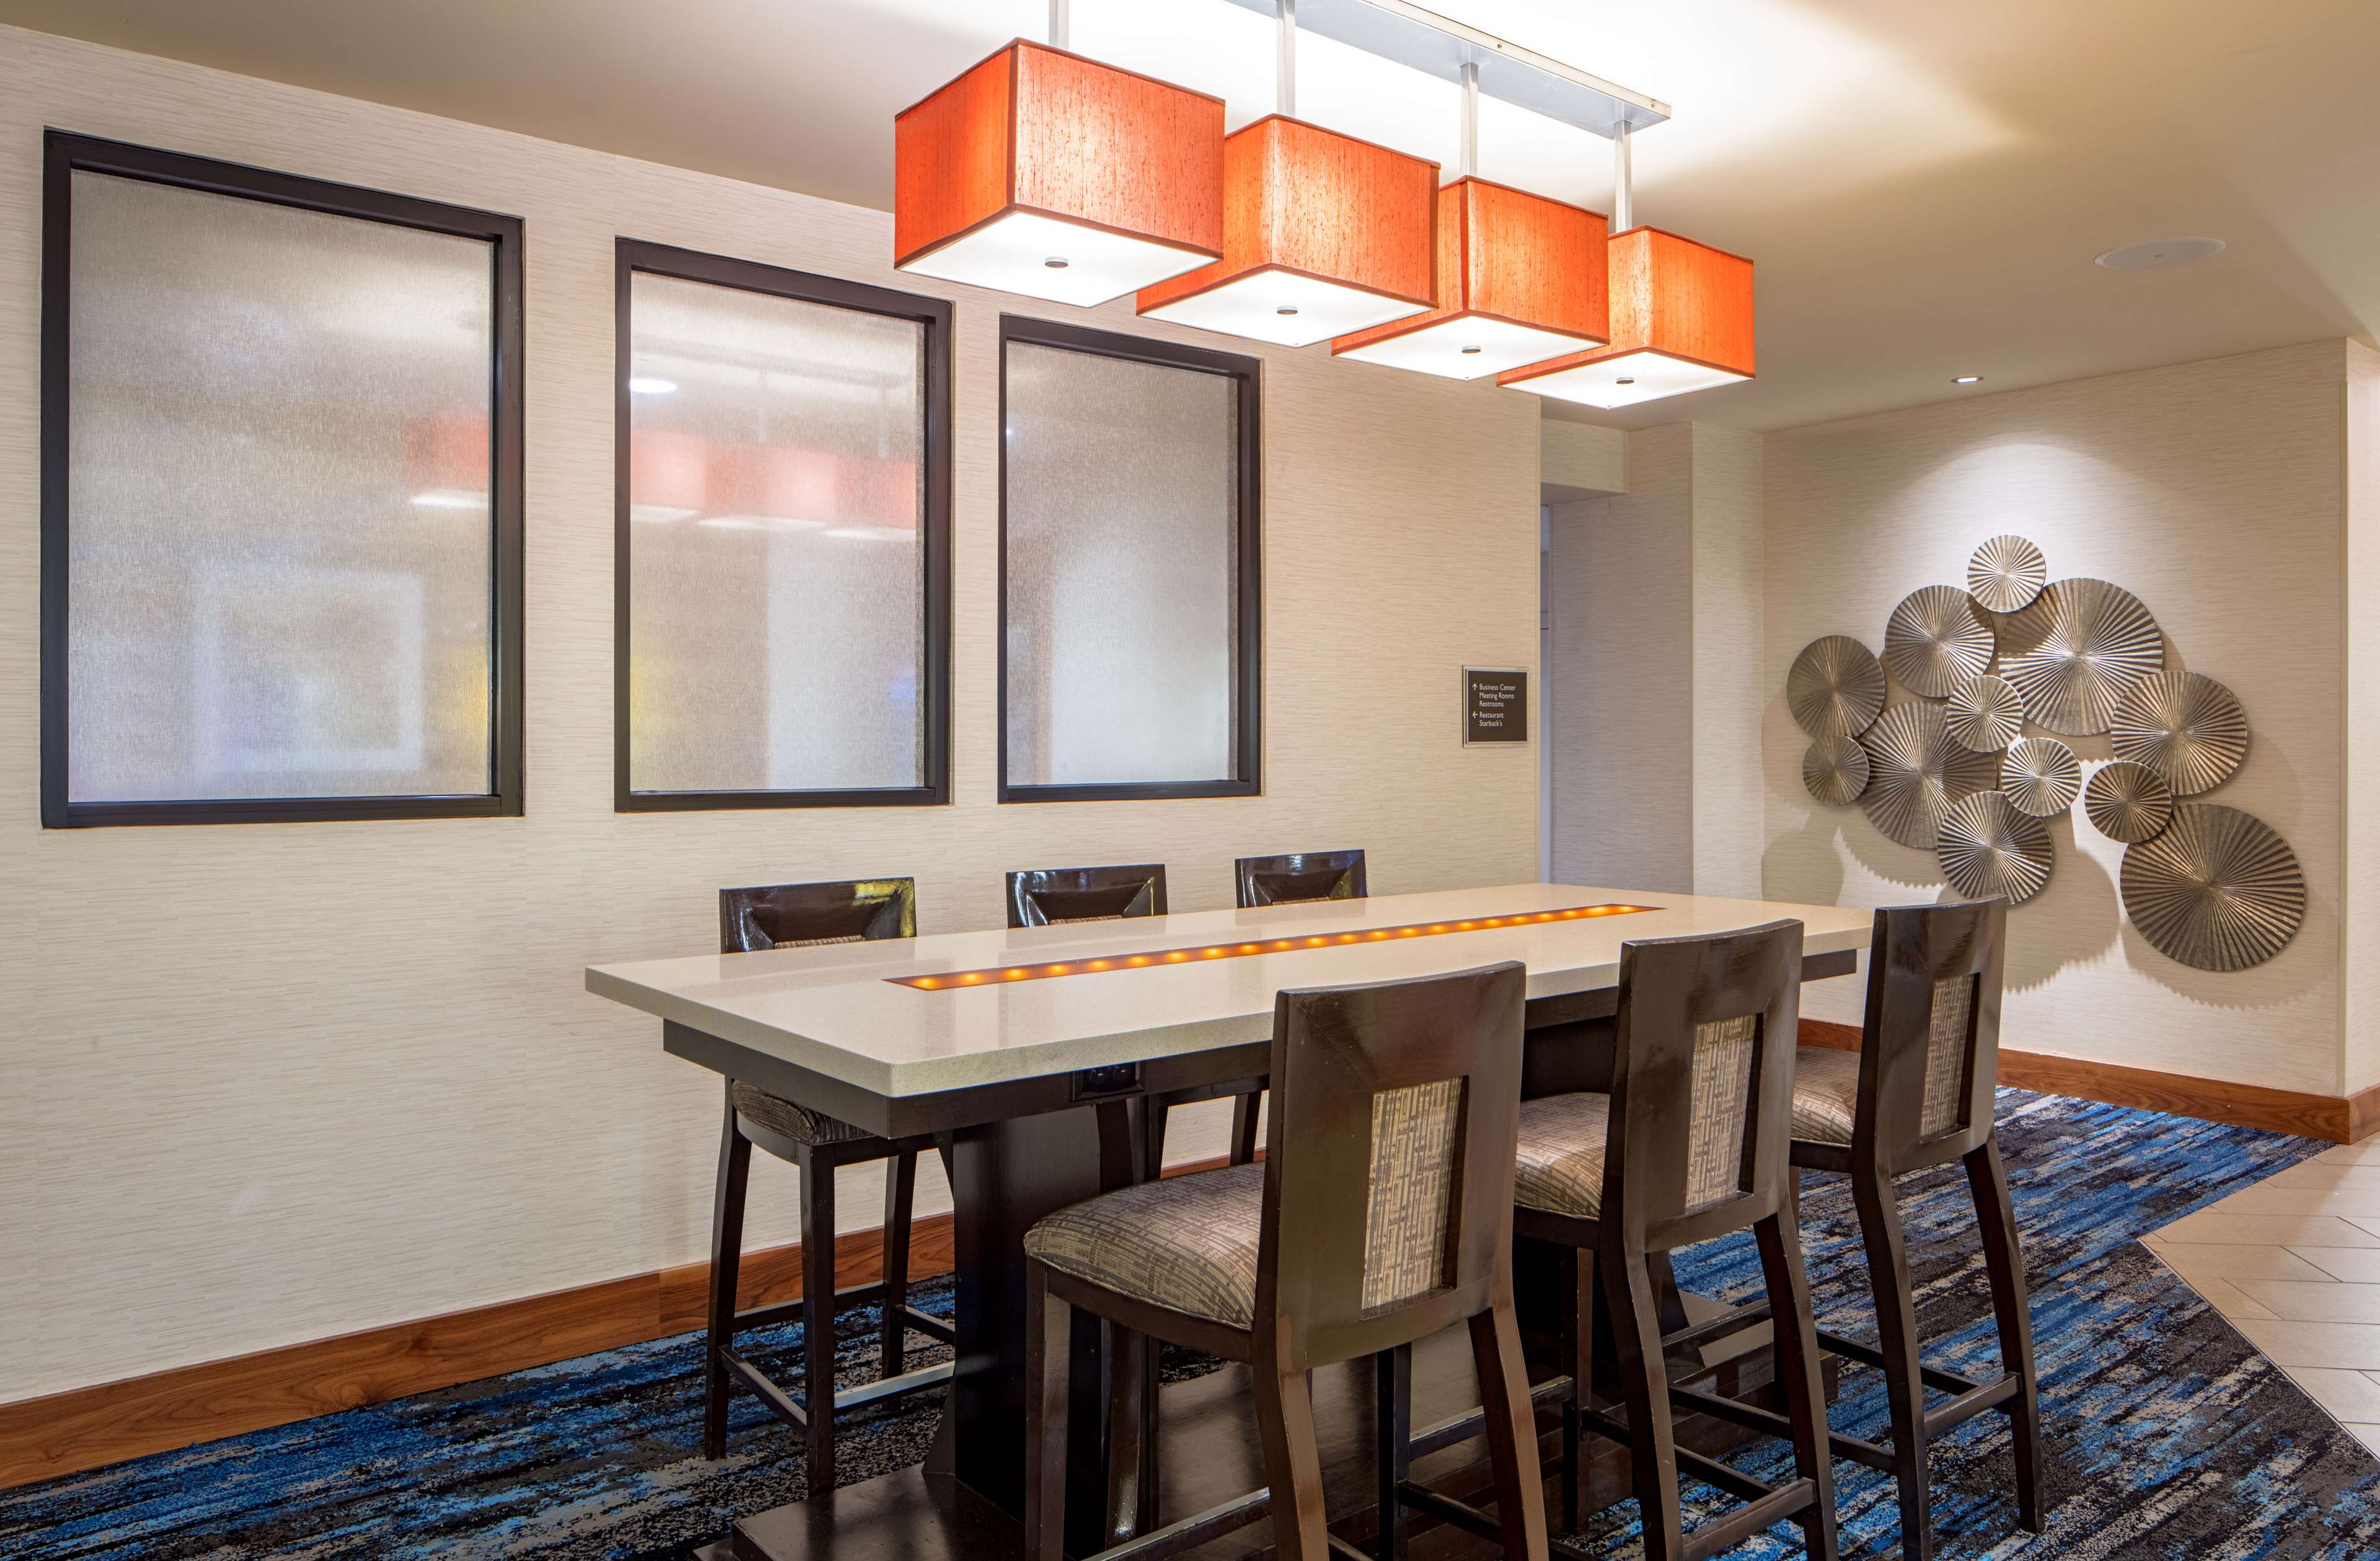 DoubleTree Suites by Hilton Hotel Minneapolis image 5